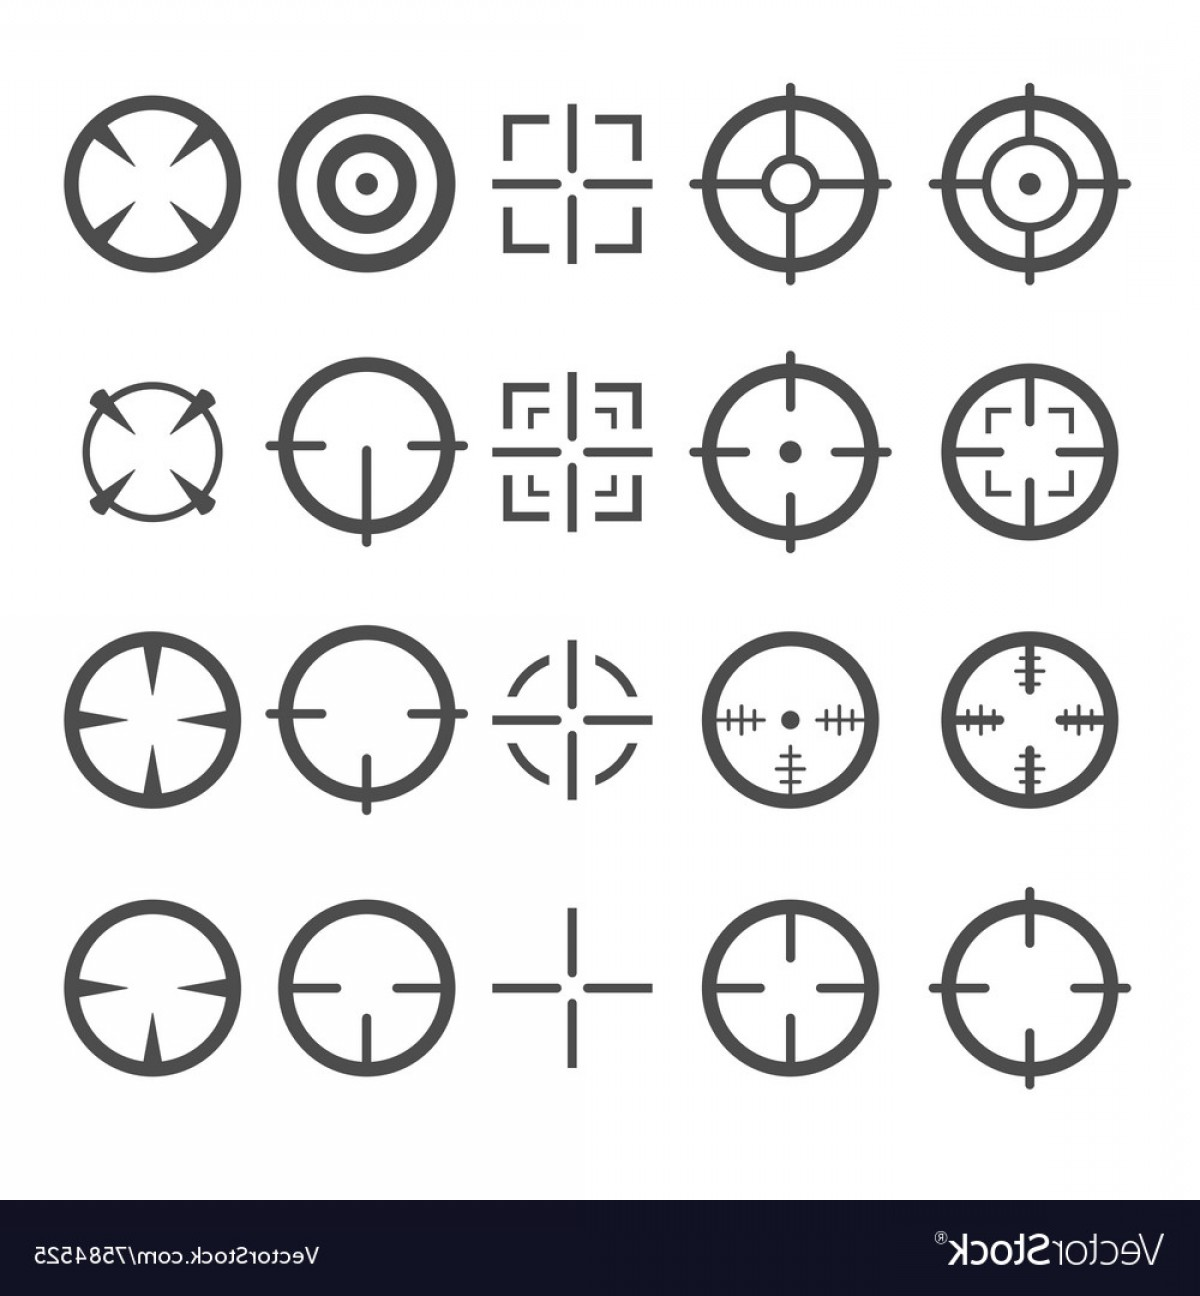 1200x1296 Crosshair Icon Set Target Mouse Cursor Pointers Vector Lazttweet